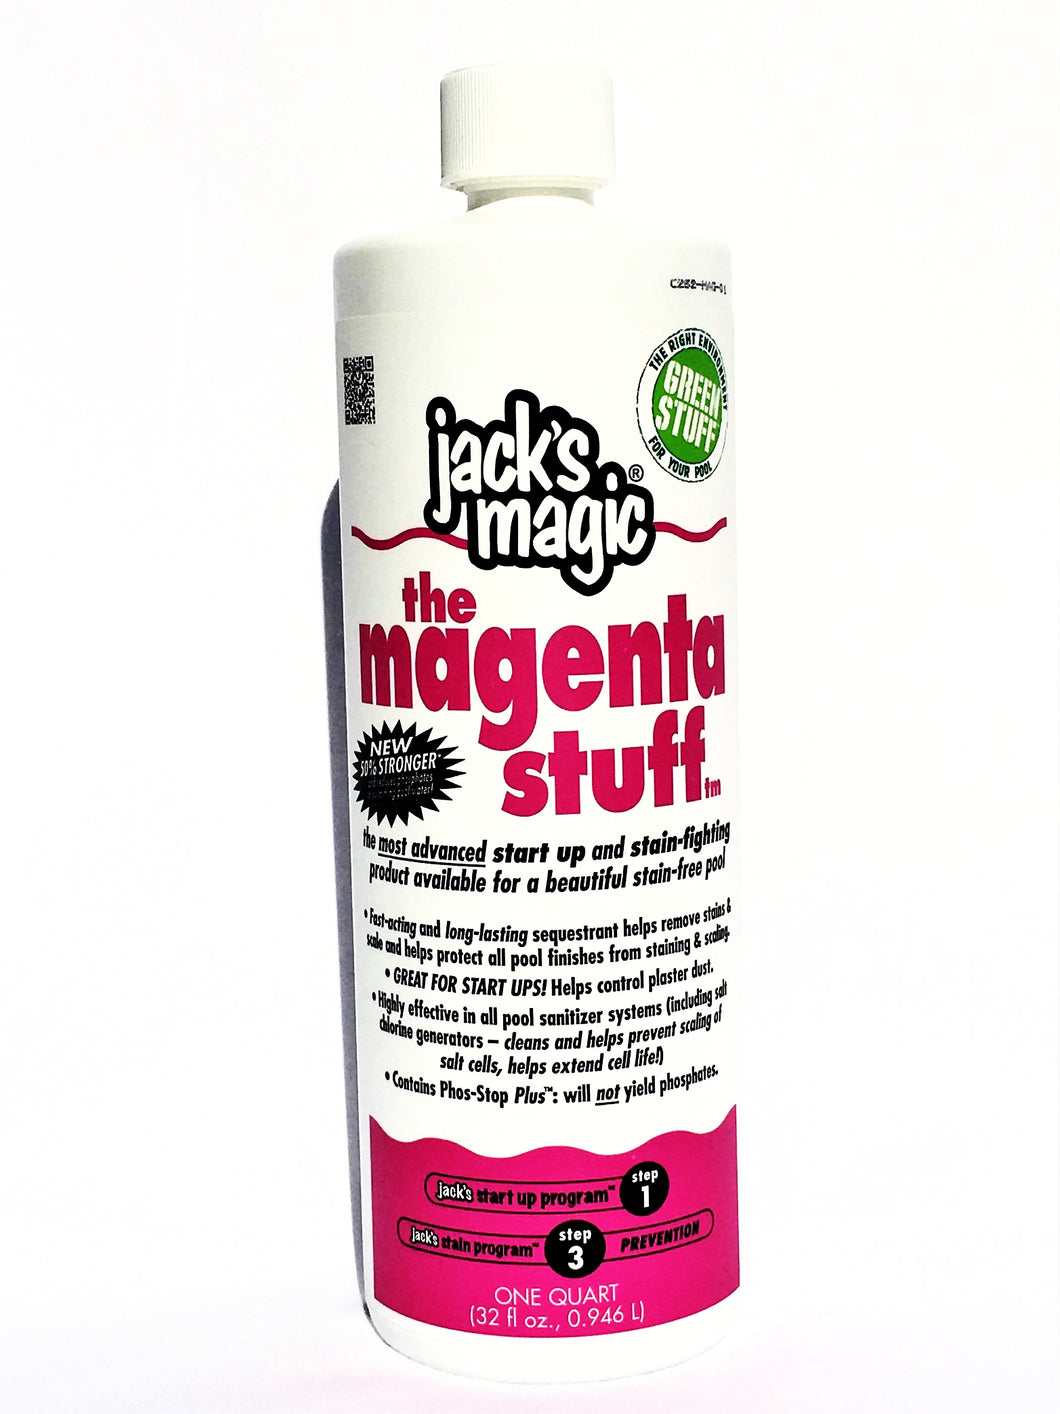 Jack's Magic The Magenta Stuff